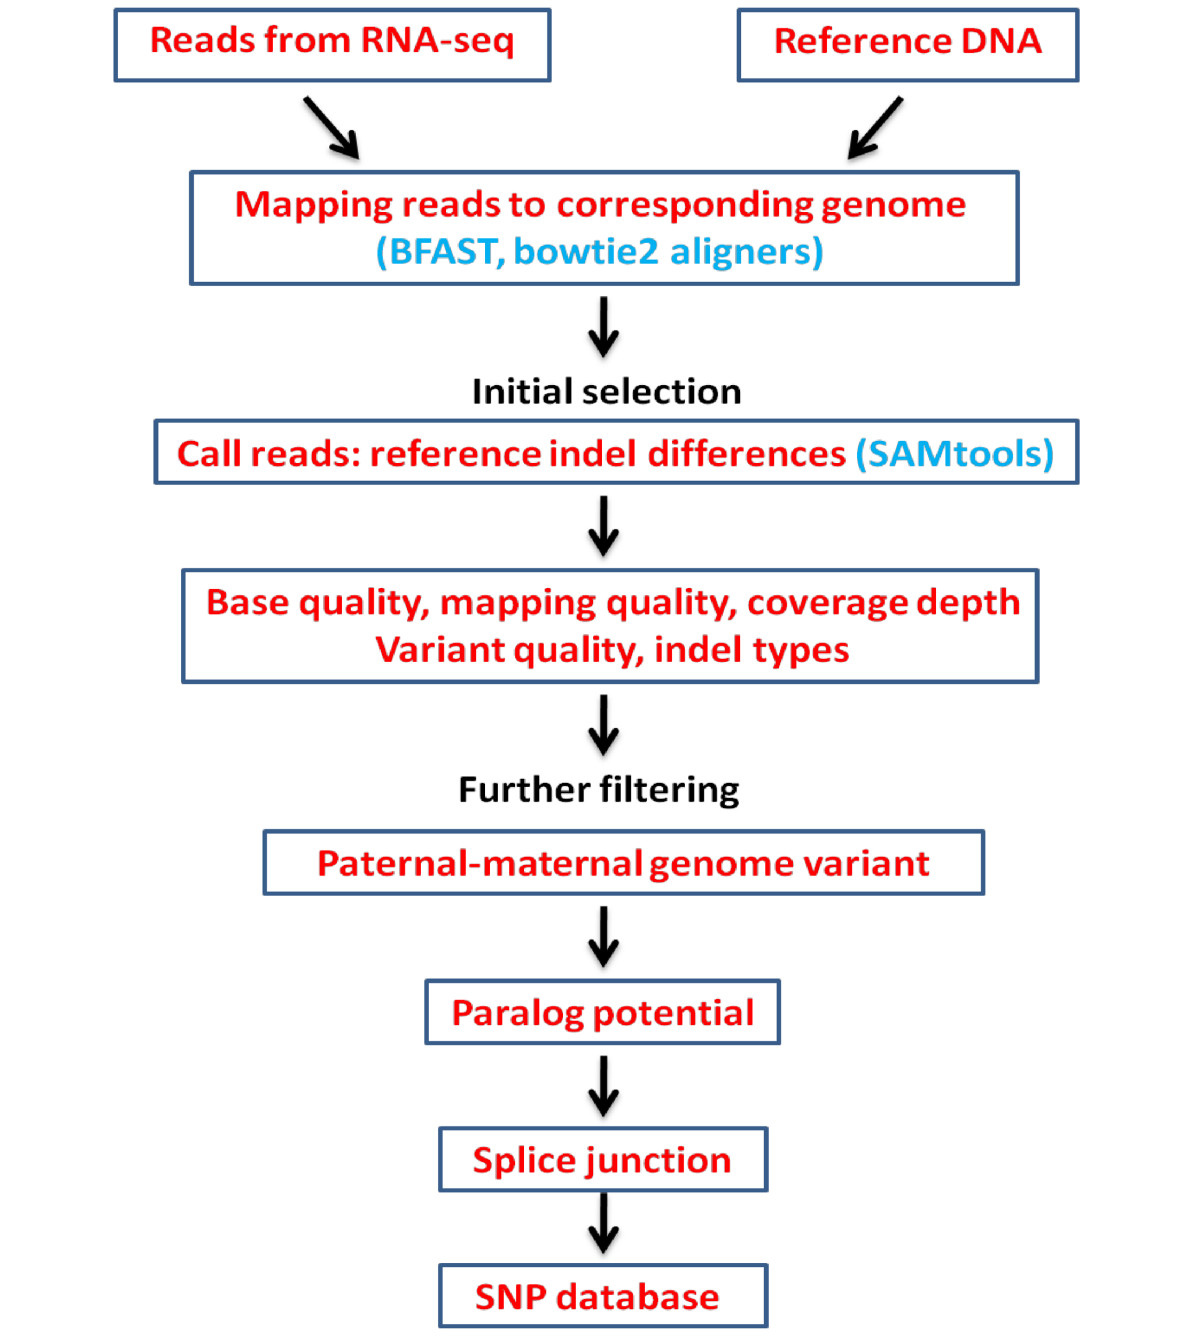 https://static-content.springer.com/image/art%3A10.1186%2F1471-2164-13-616/MediaObjects/12864_2012_Article_4379_Fig1_HTML.jpg